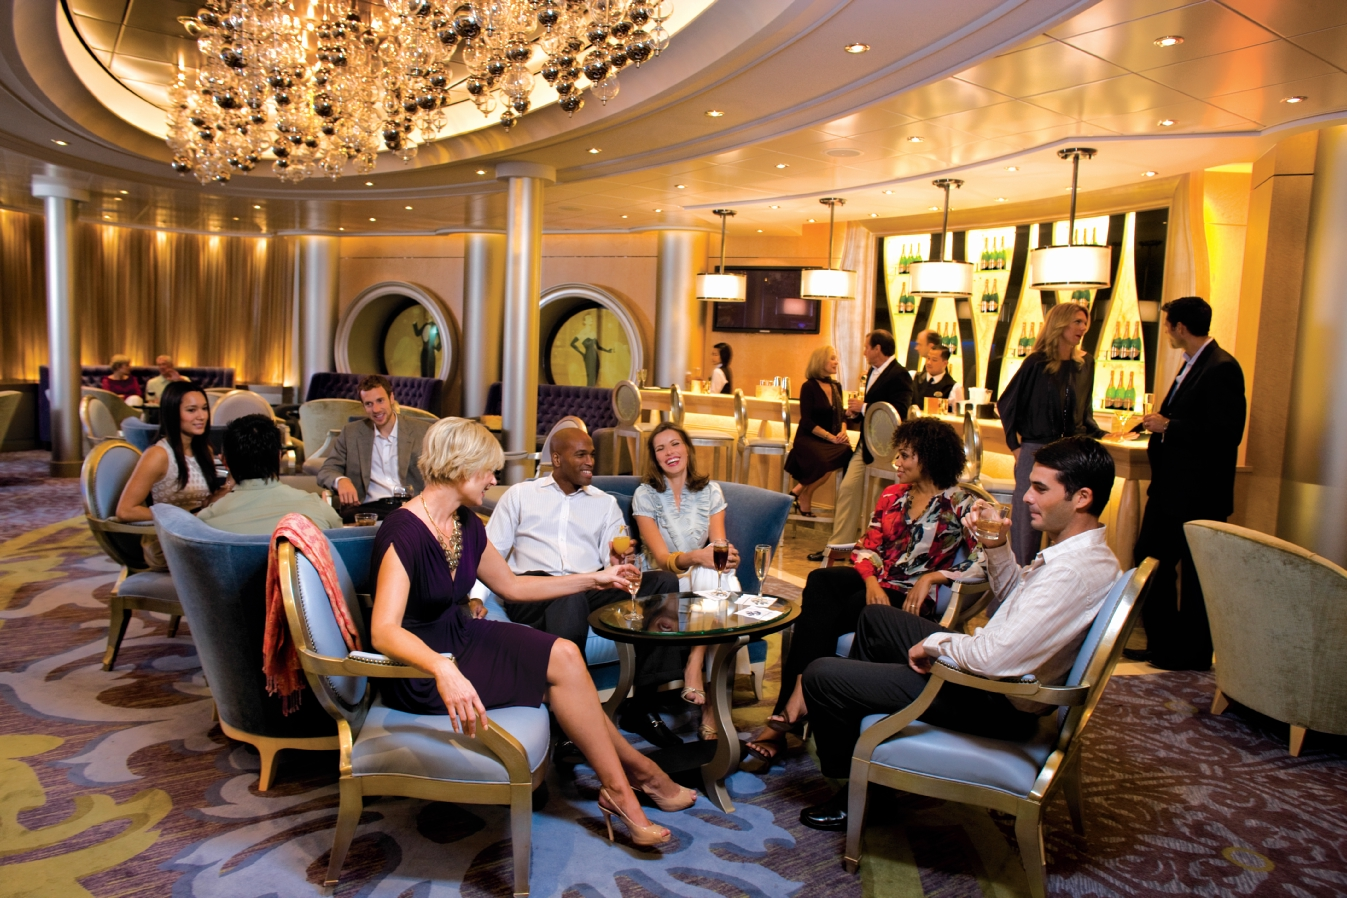 Sheer Luxury on the Largest Cruise Ship, Allure of the Seas 10